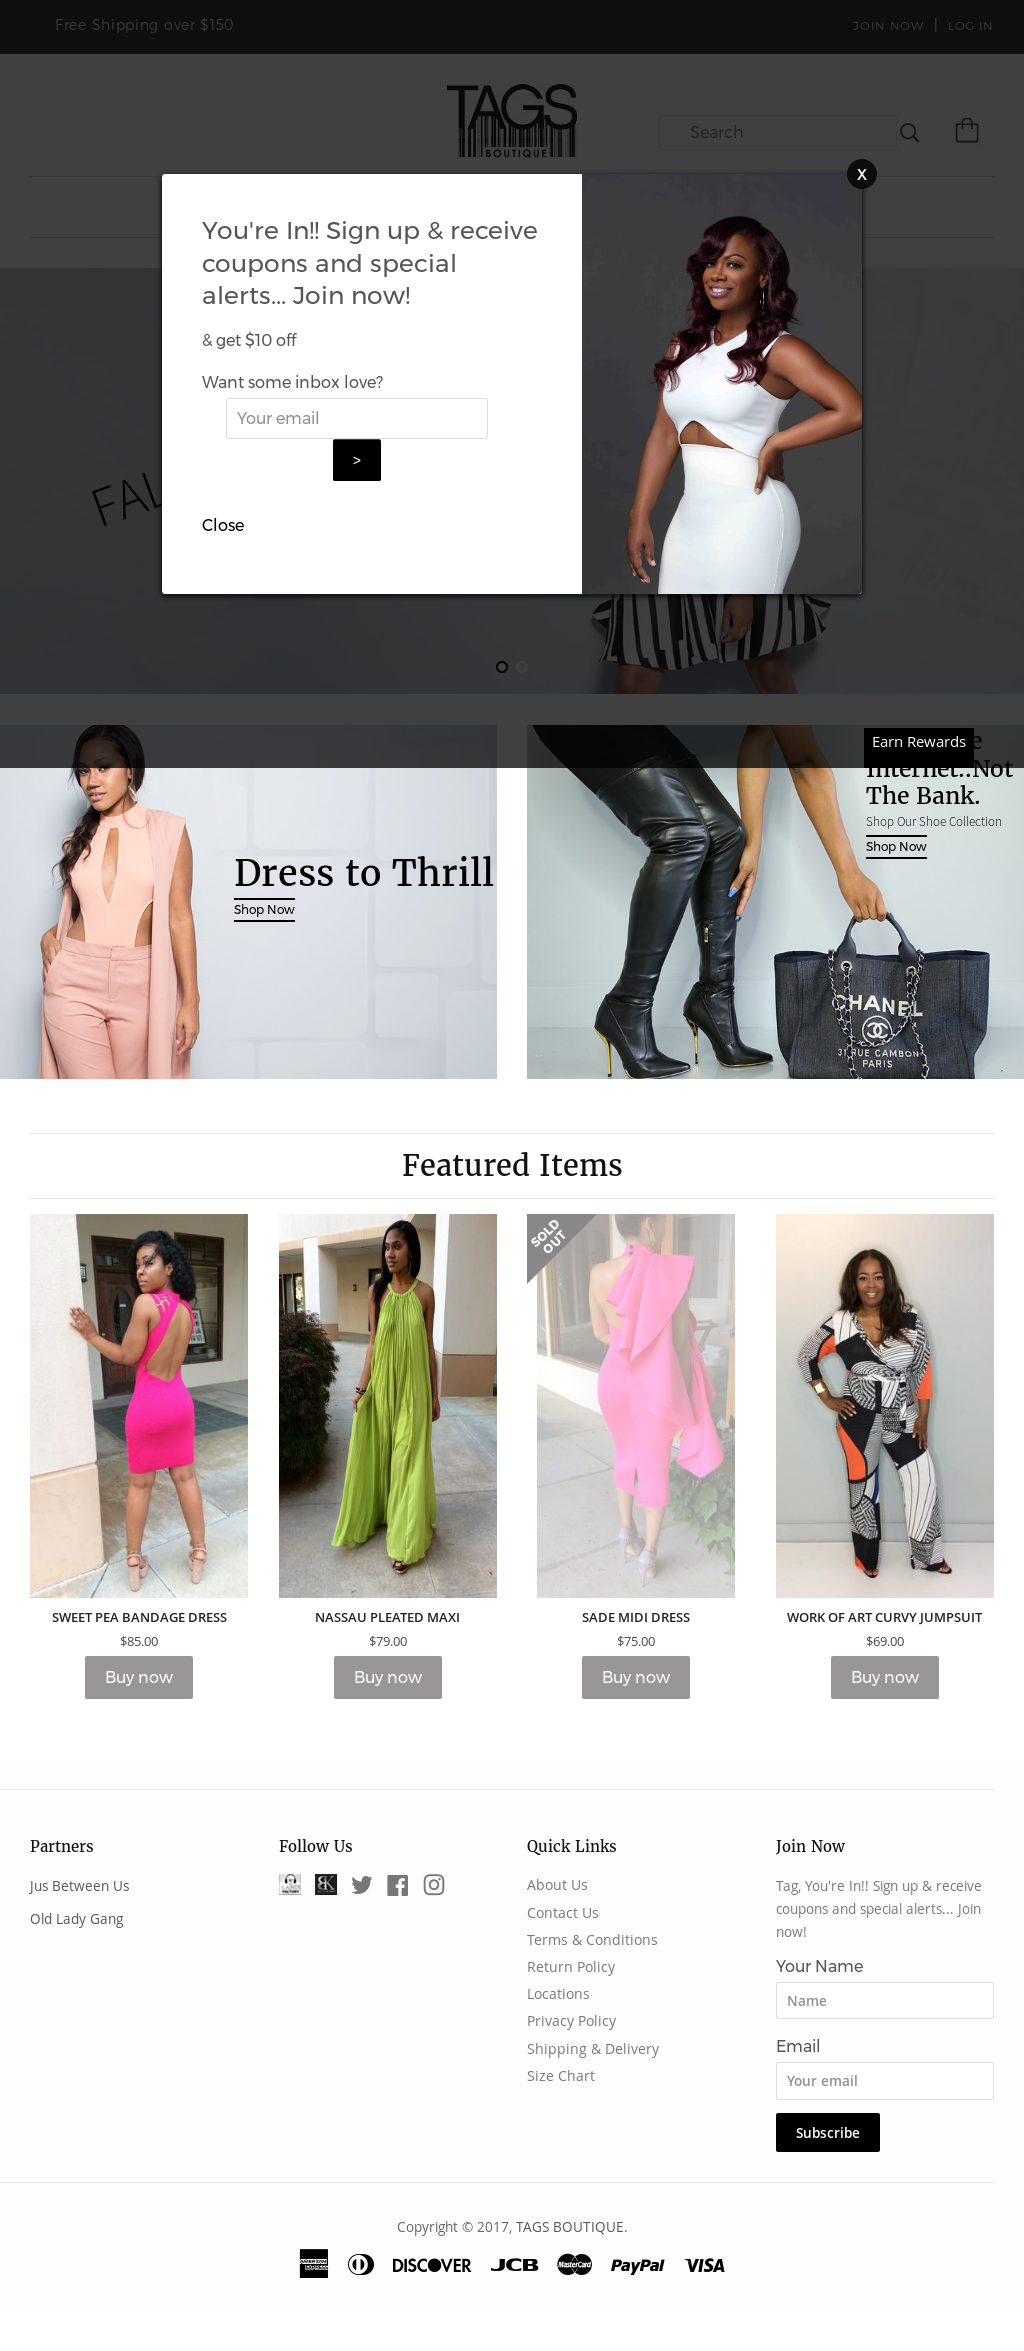 Tags Boutique Competitors, Revenue and Employees - Owler